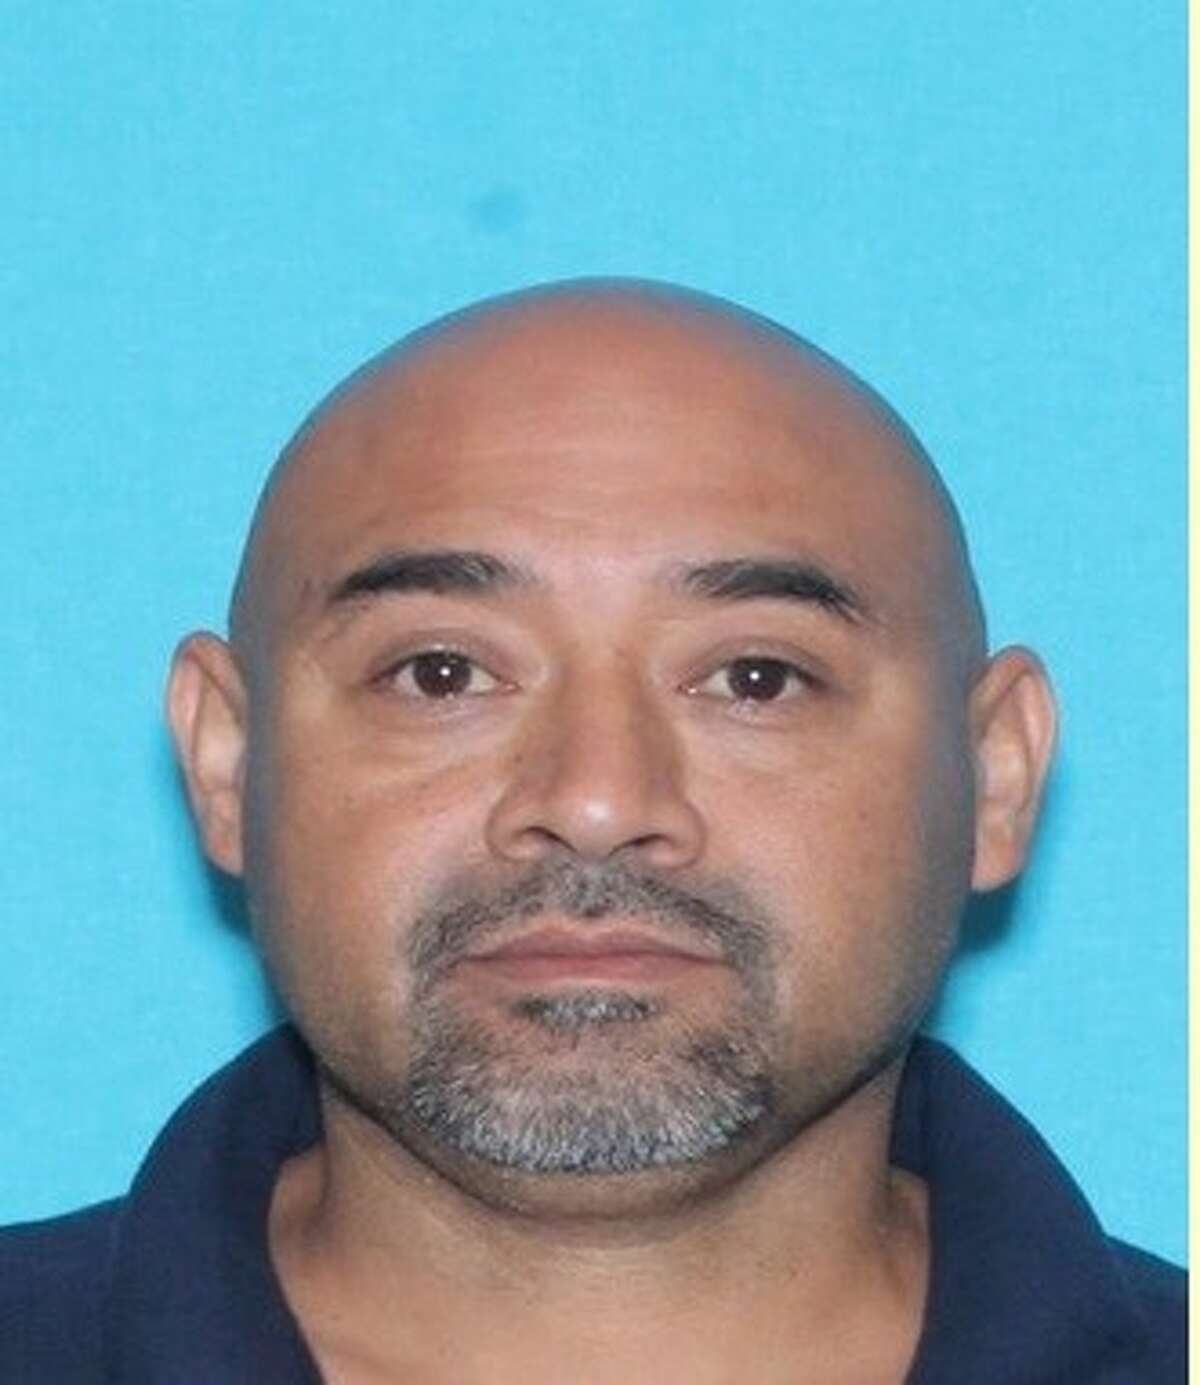 Convicted sex offender and Tango Blast gang member Manuel Mora is wanted by the Texas Attorney General's Office for a parole violation. He may be living in the Pasadena area.